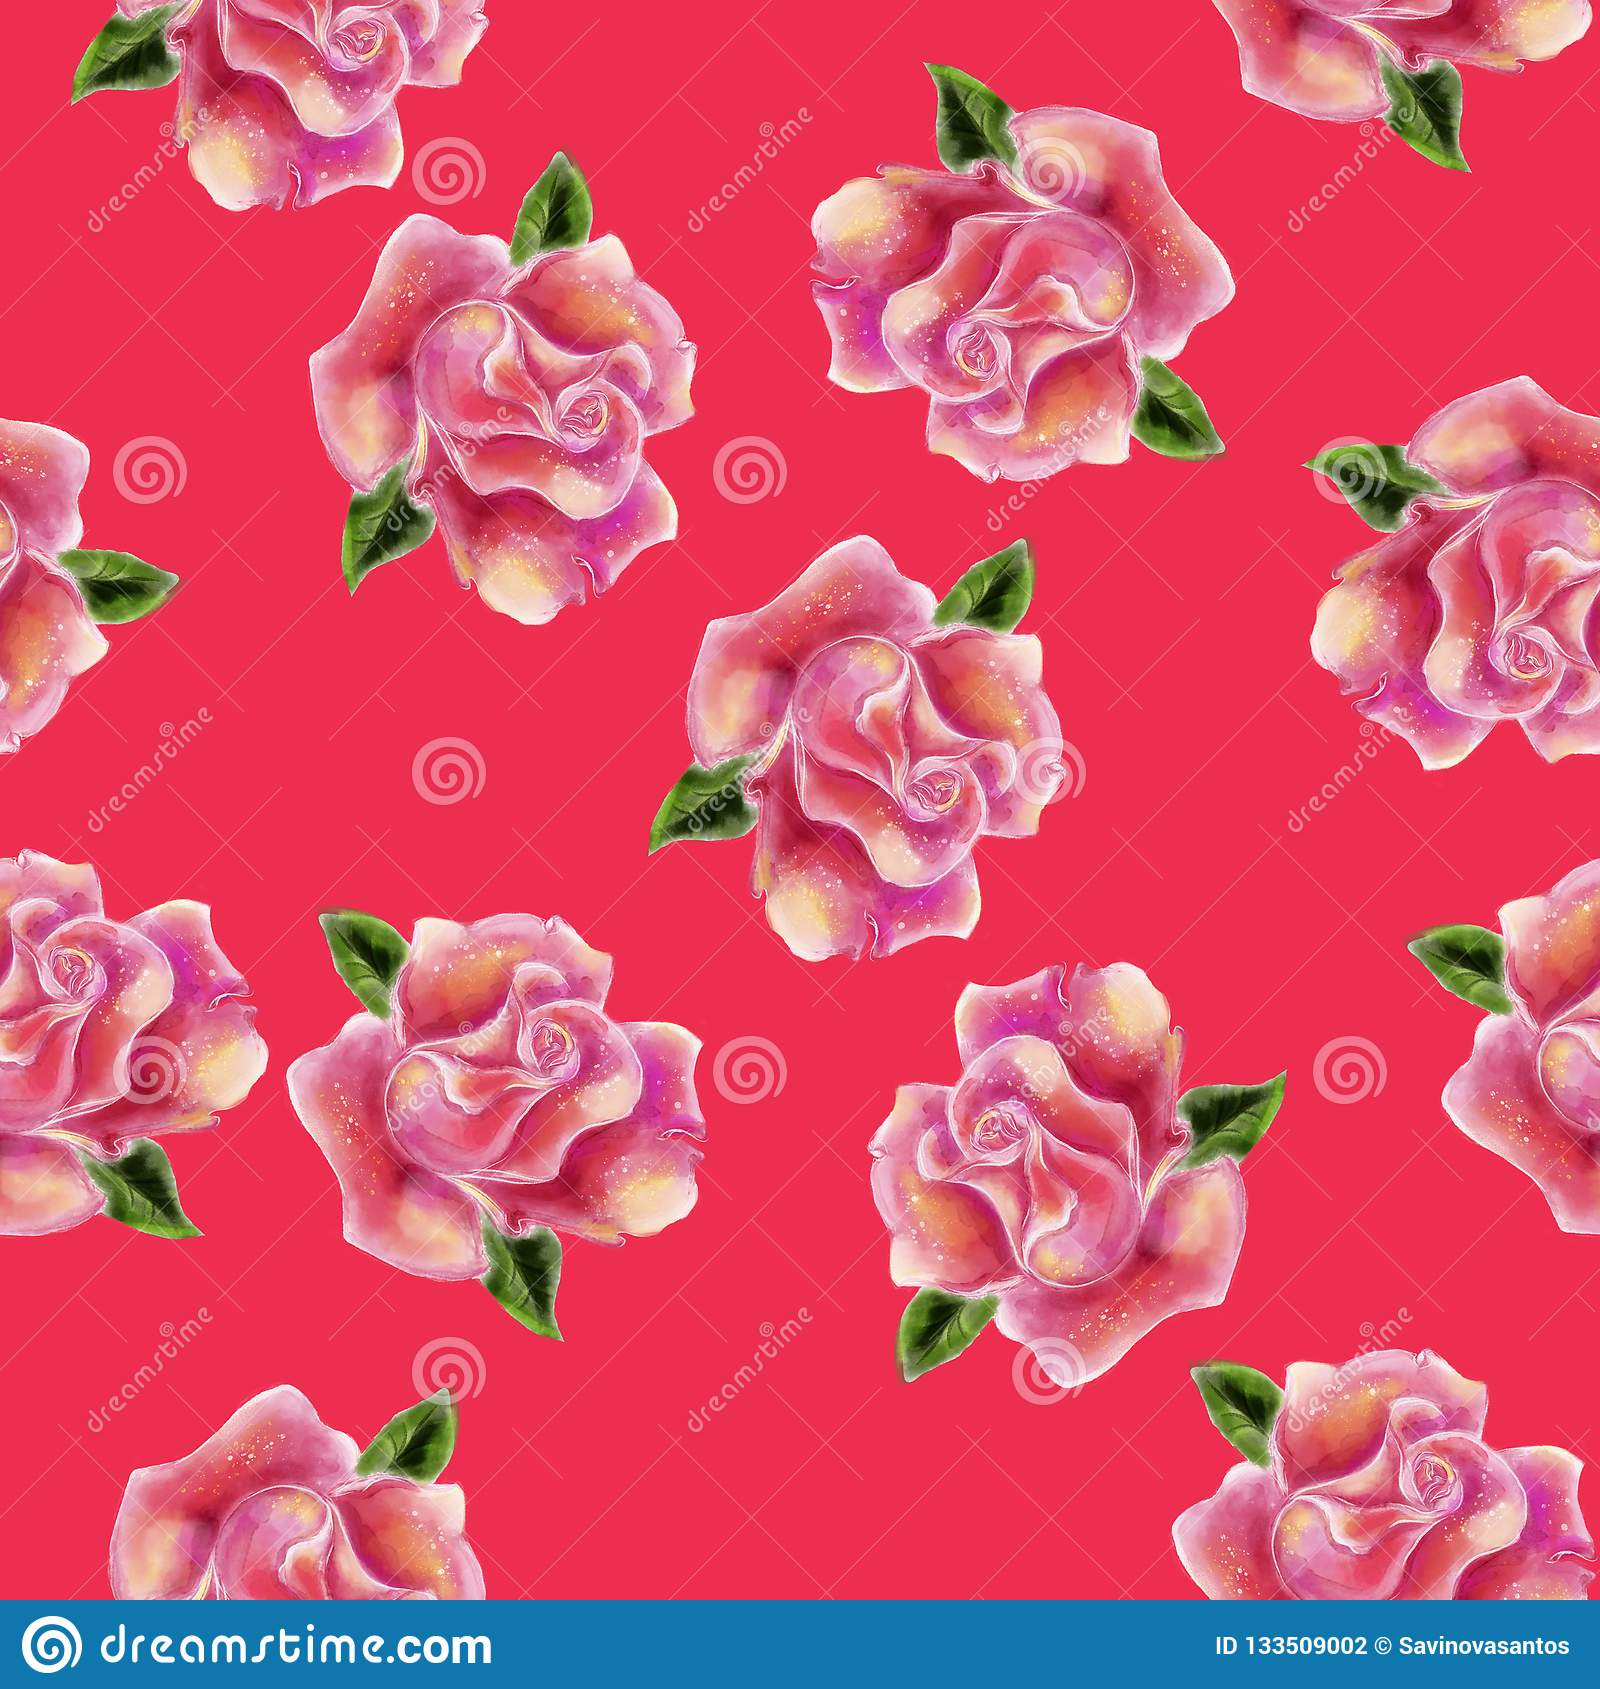 Vintage hand drawn watercolor rose flower seamless pattern